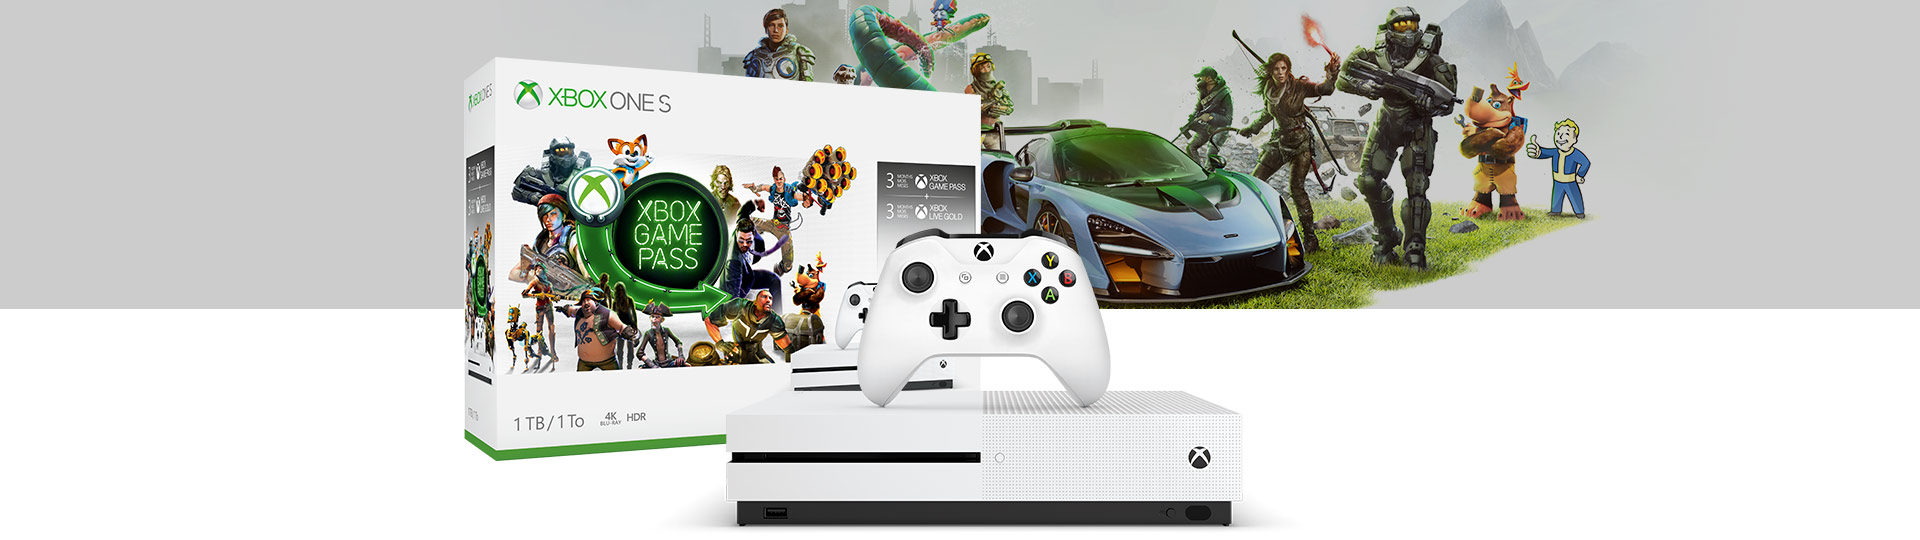 Xbox One S Starter bundle box, console and controller with background image of several game characters